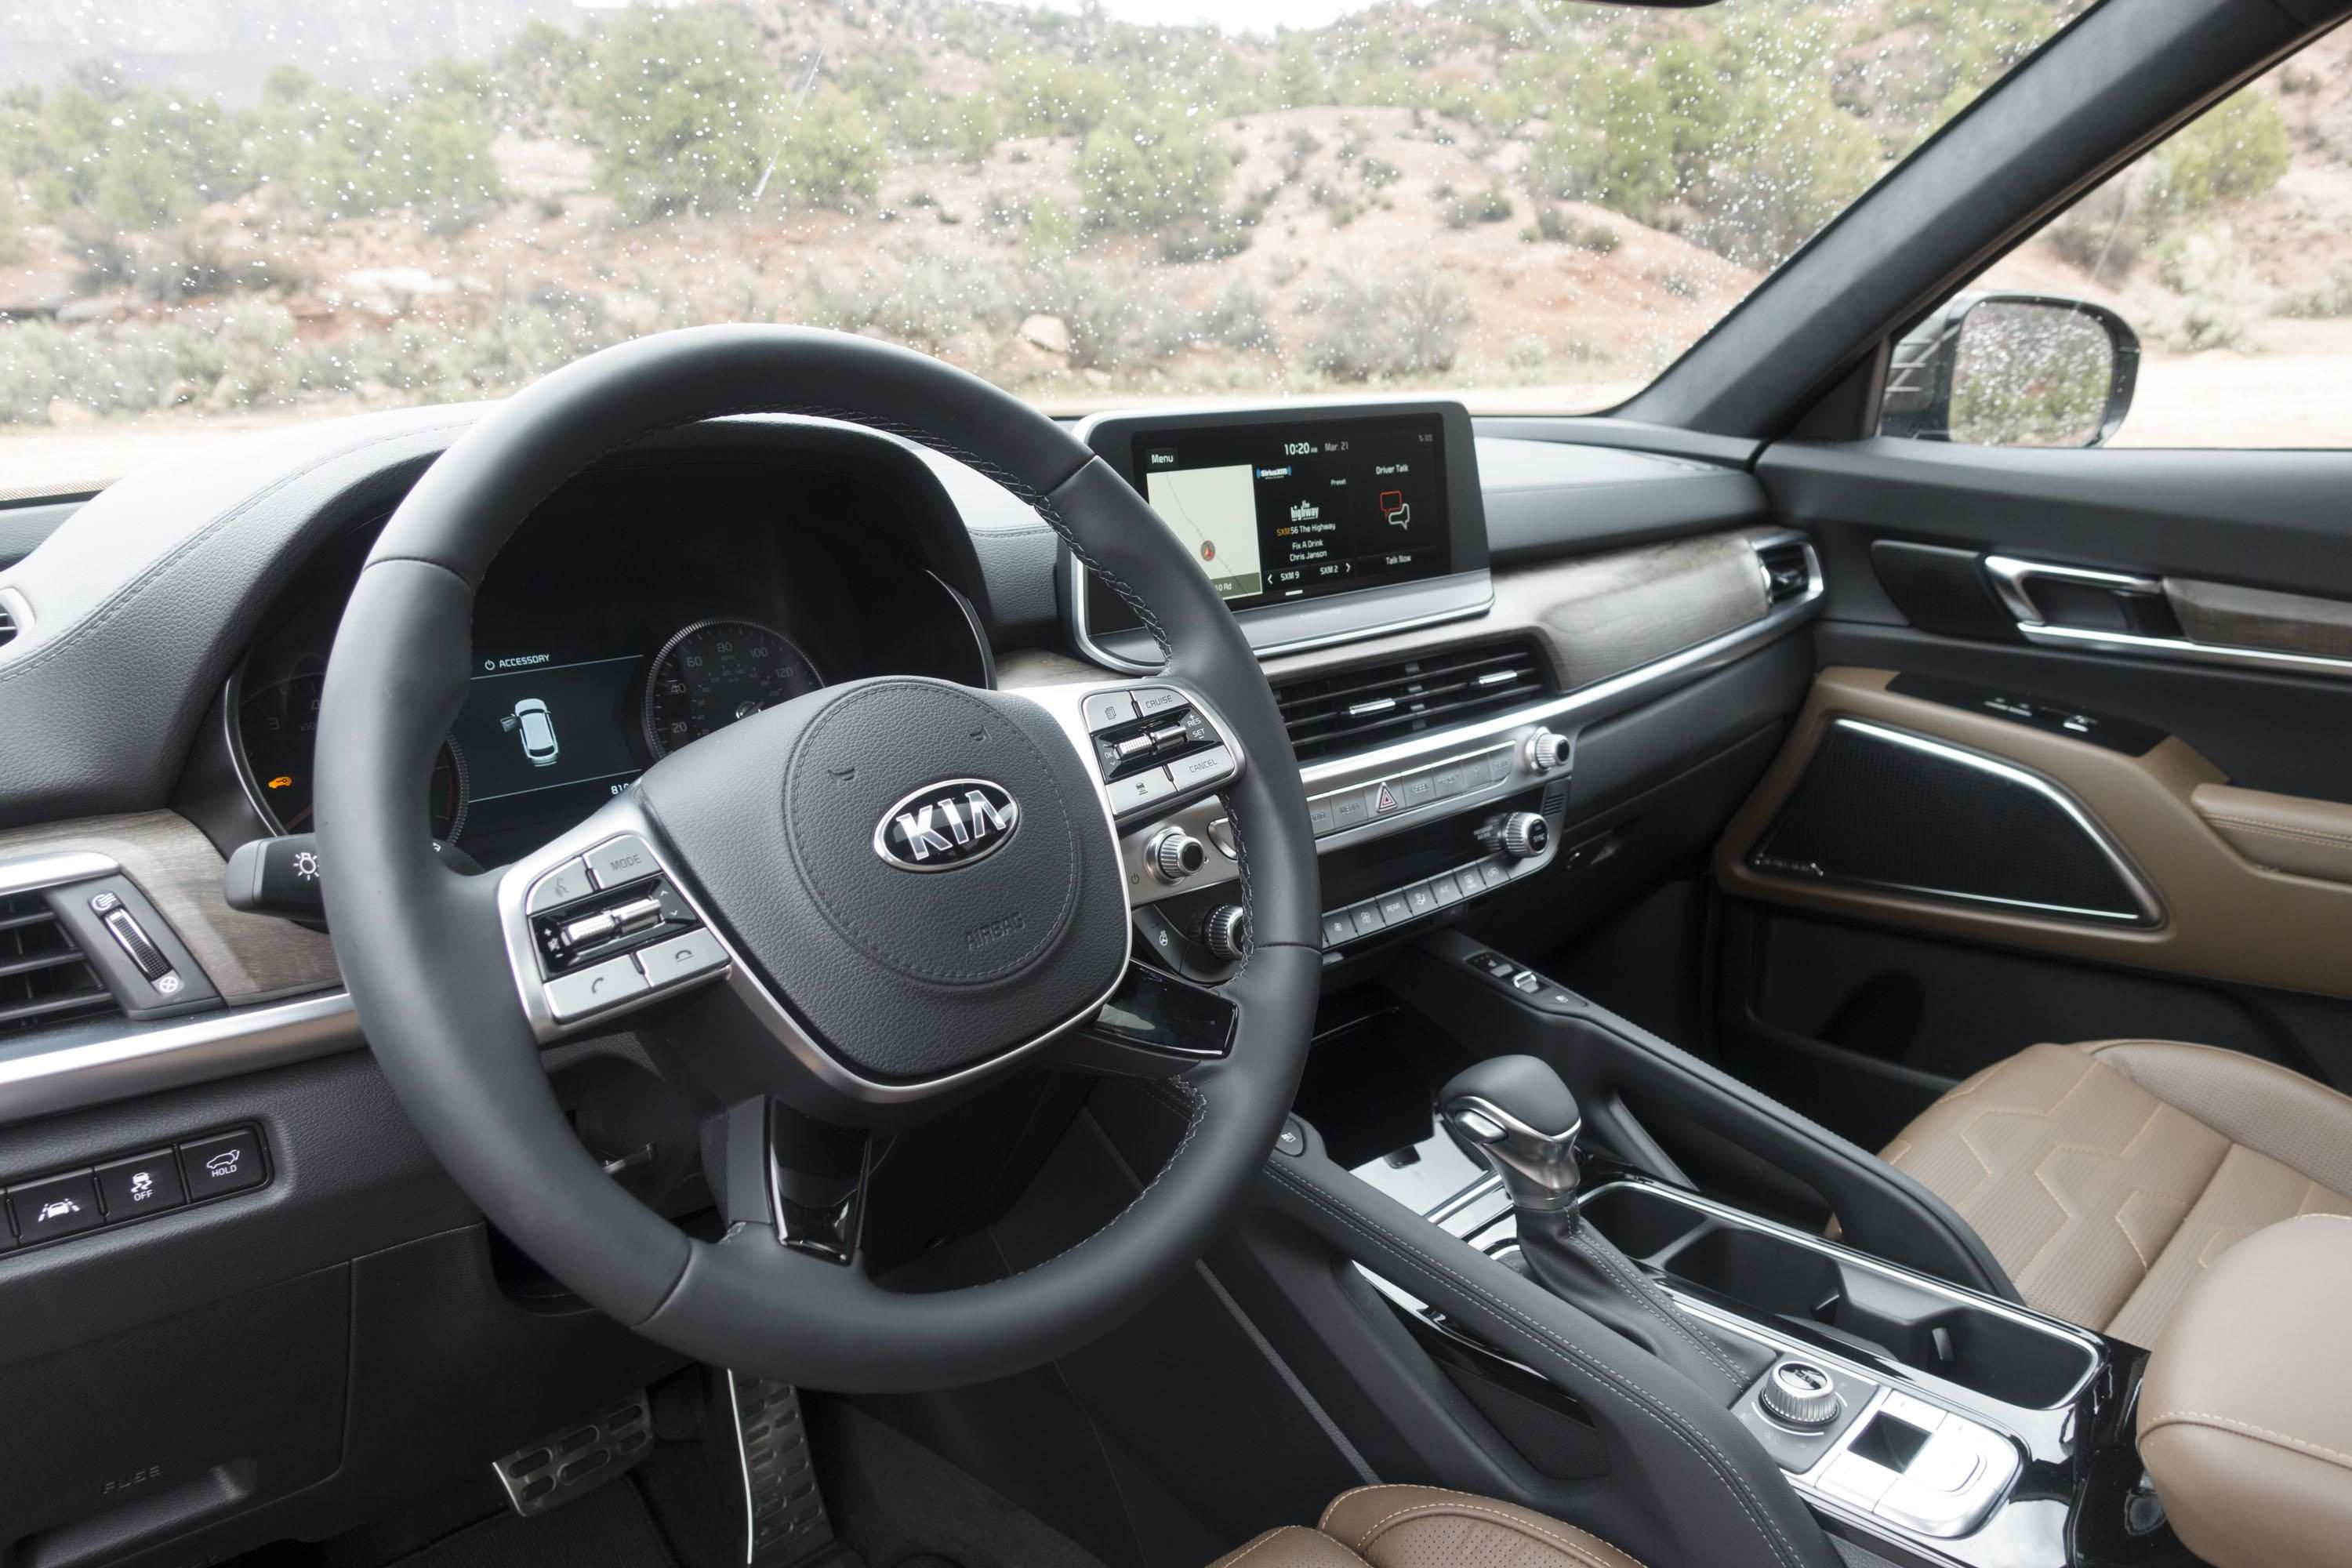 16 Great Kia Telluride 2020 Interior Exterior and Interior with Kia Telluride 2020 Interior